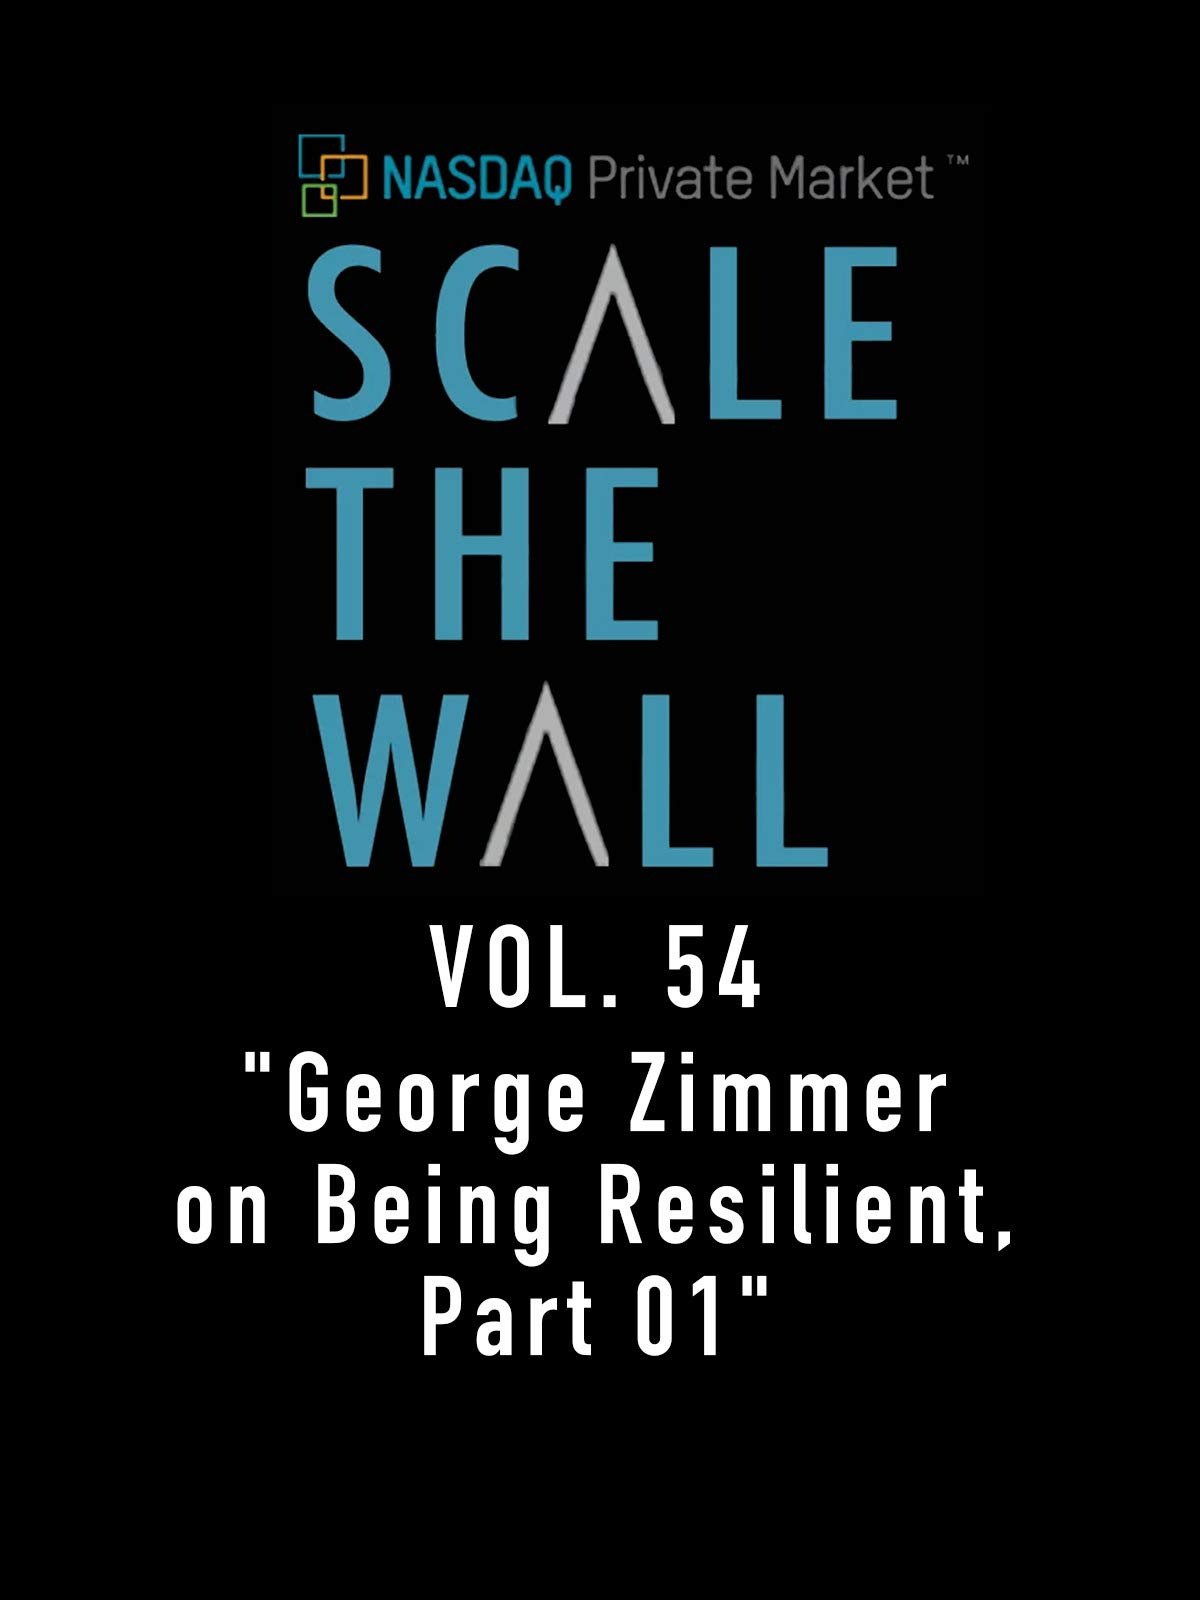 Scale The Wall Vol. 54